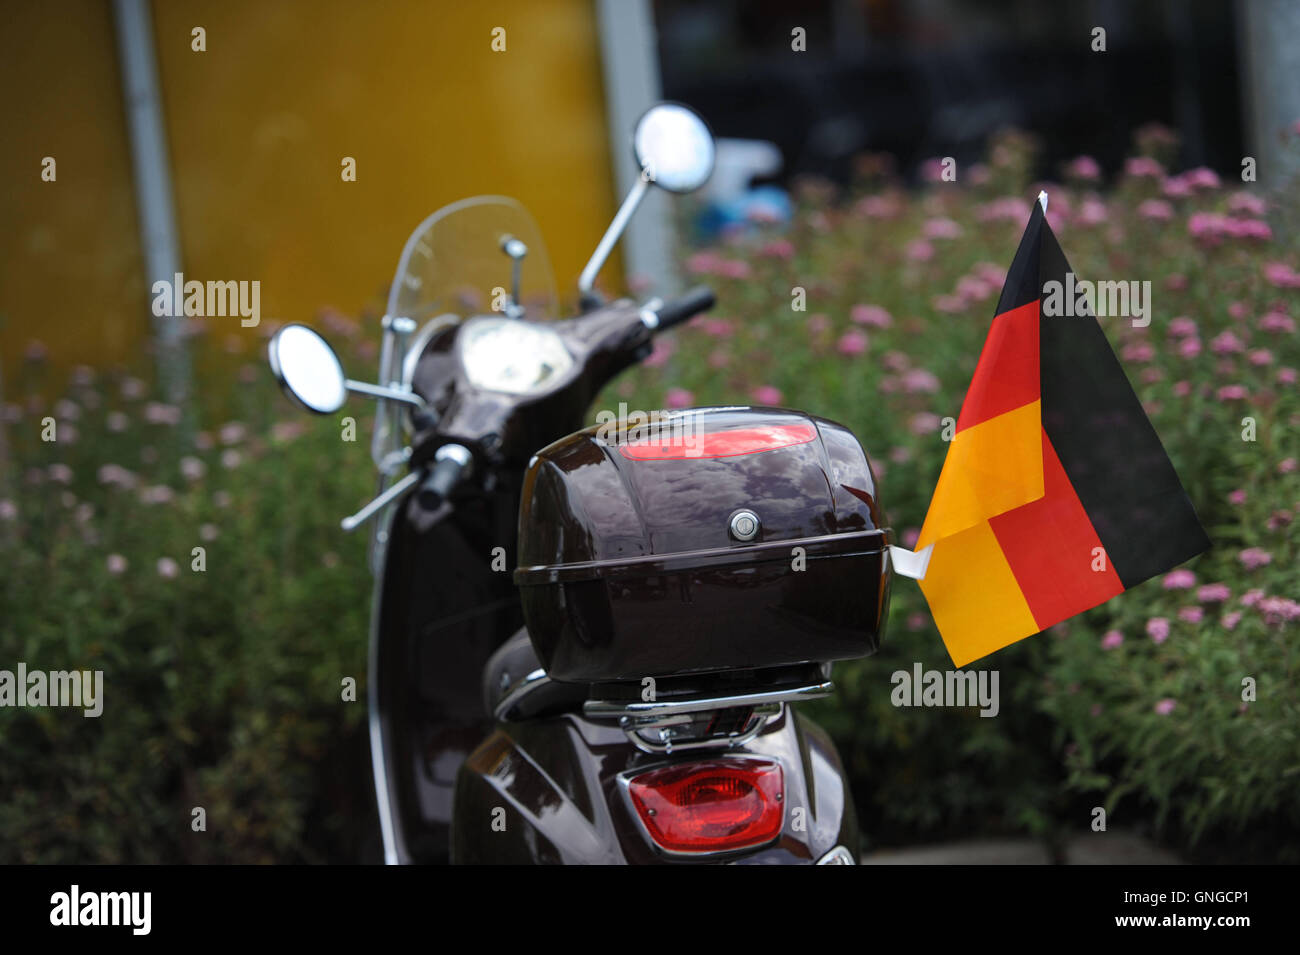 Flagged Vespa scooter in Munich, 2014 Stock Photo